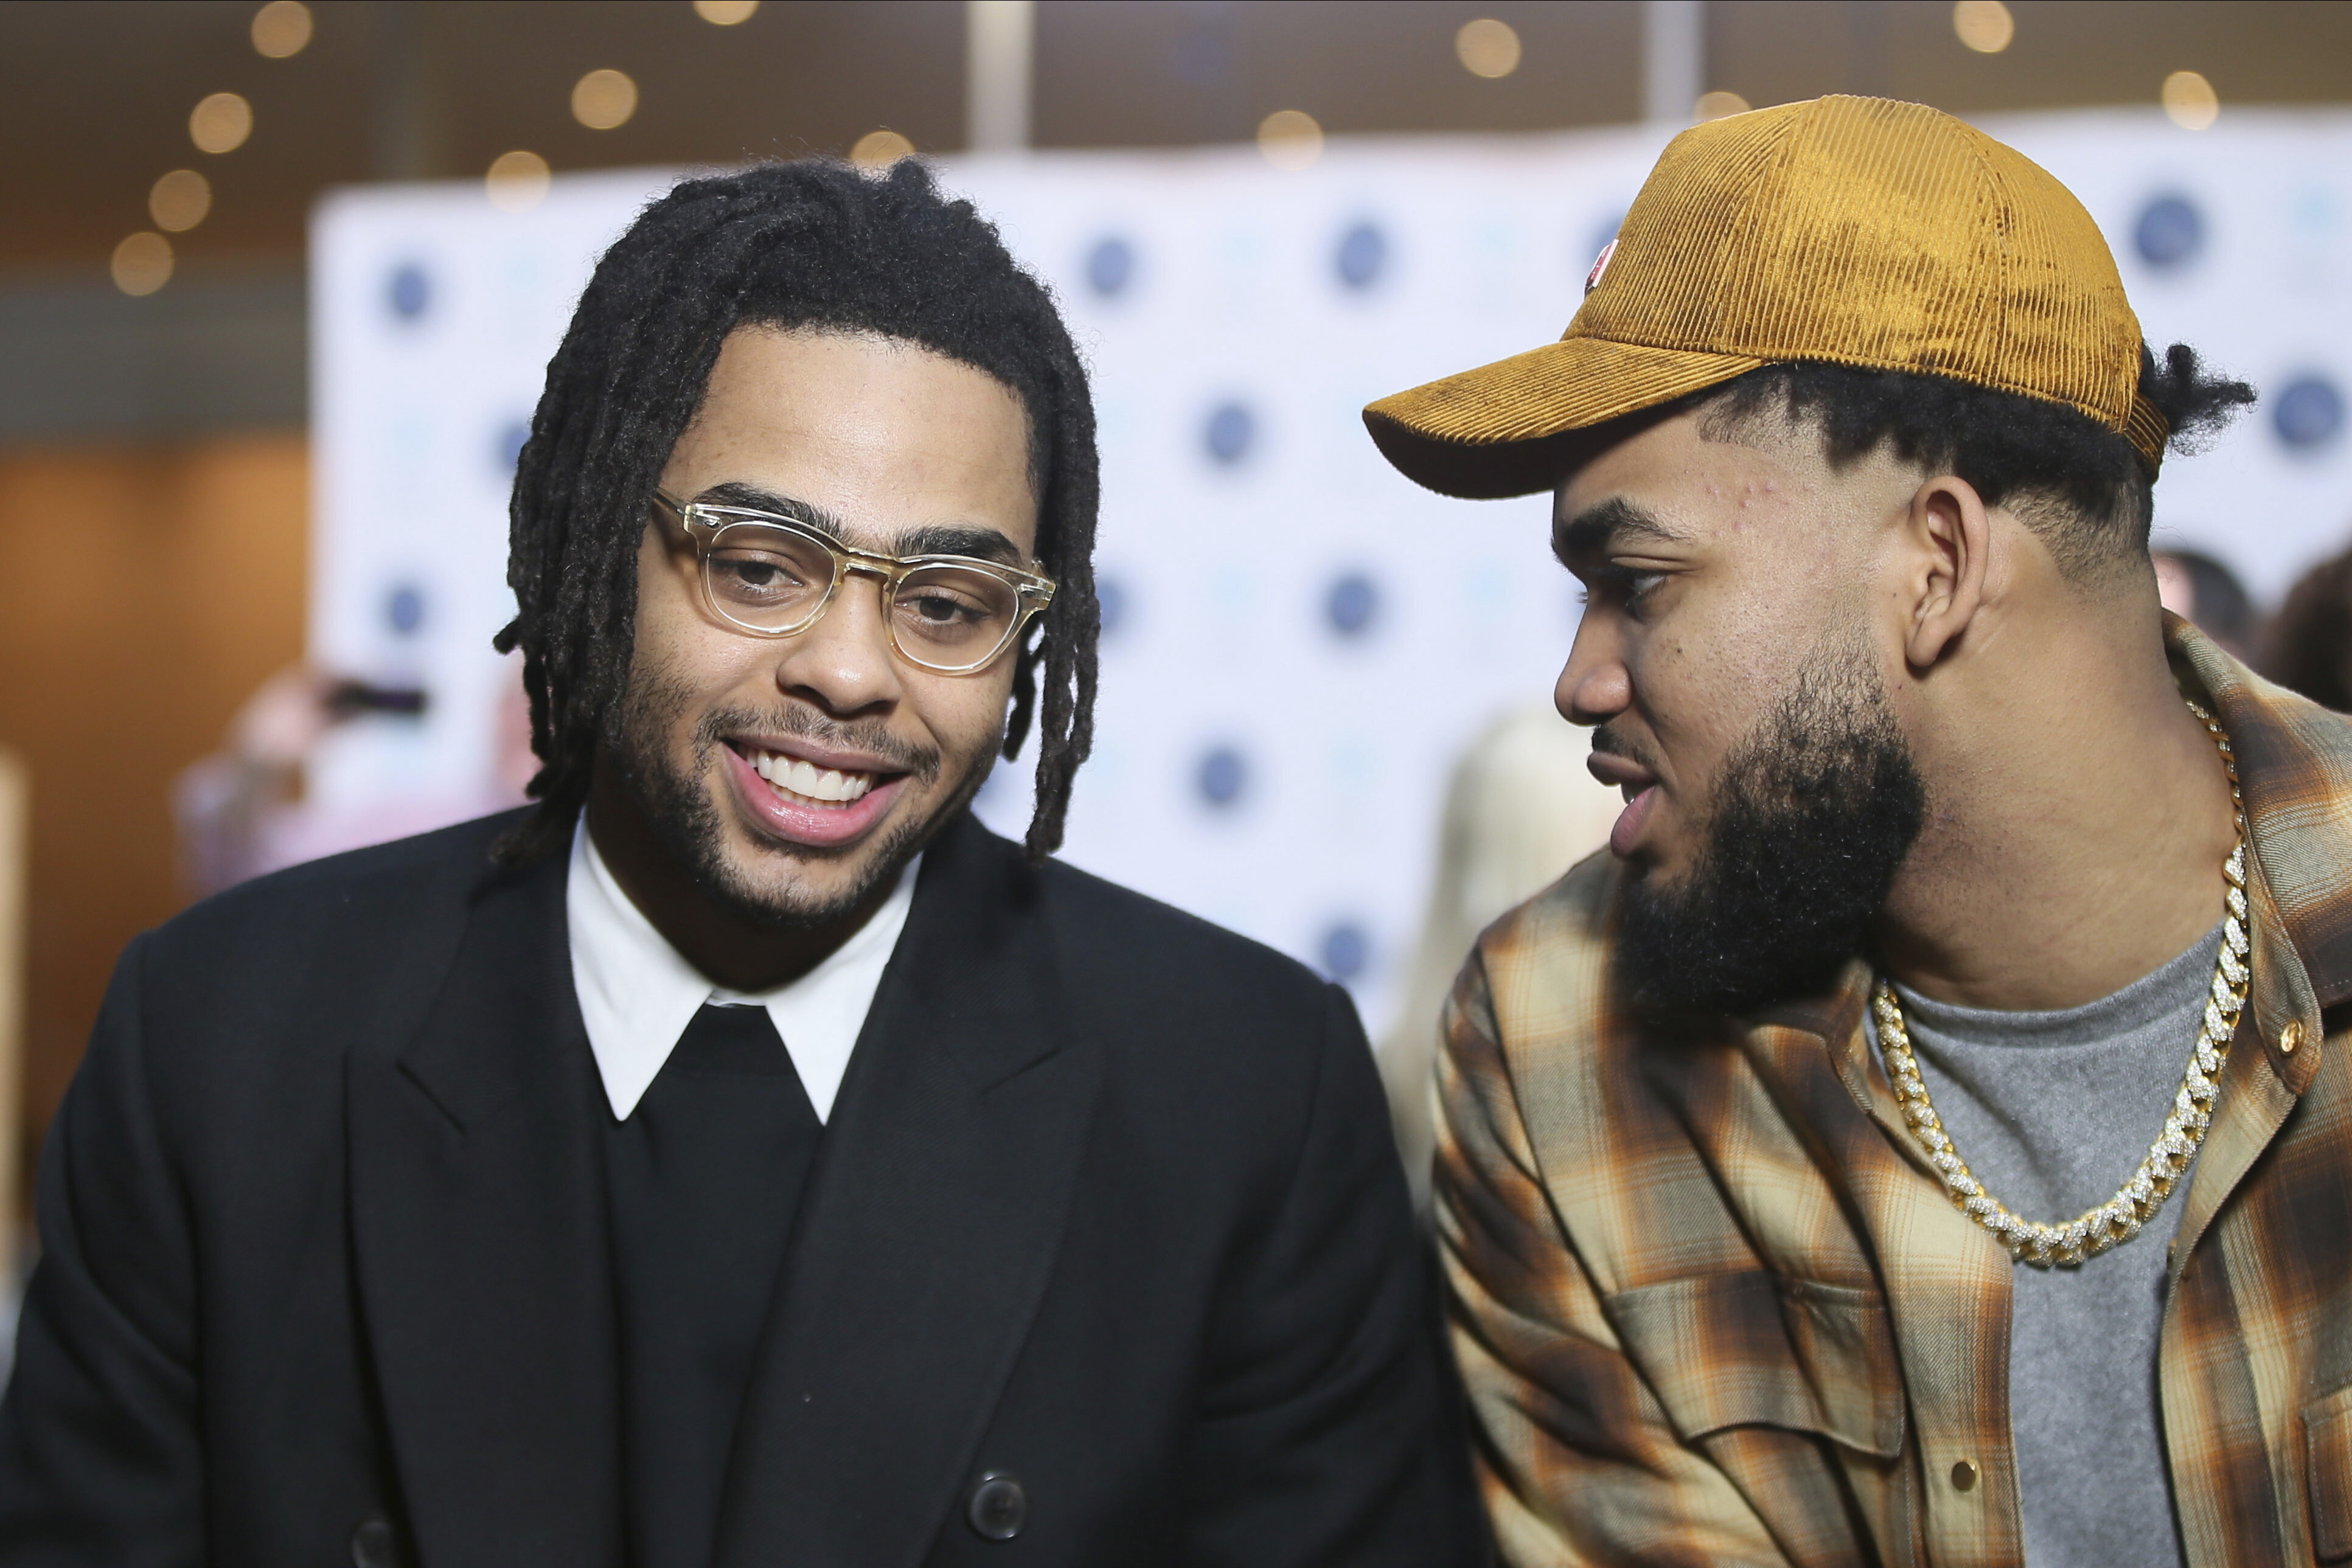 Russell, T-wolves 'feel the love' in star pairing with Towns